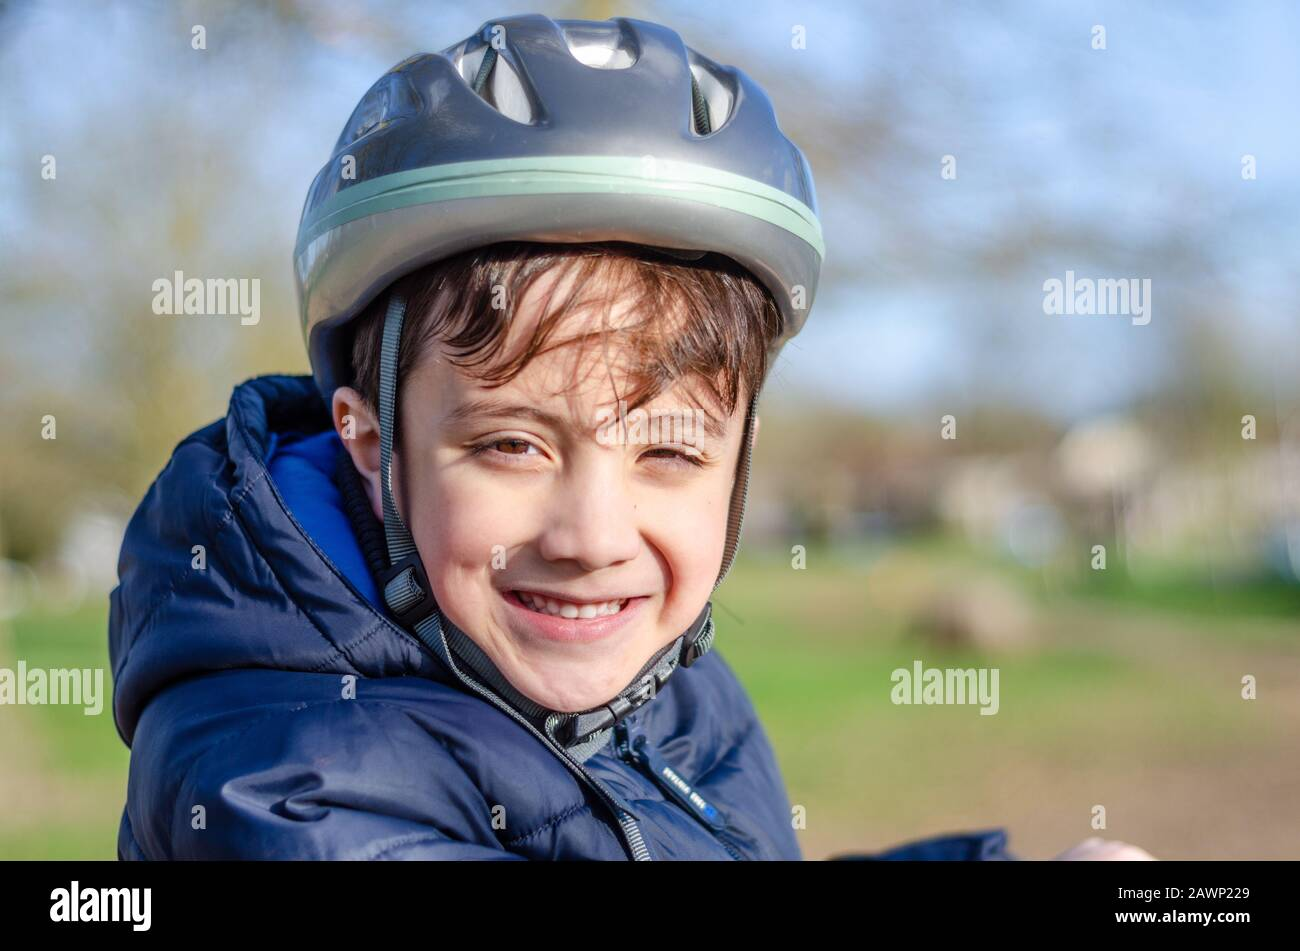 portrait-of-a-young-boy-outdoors-wearing-a-bicycle-helmet-and-smiling-2AWP229.jpg